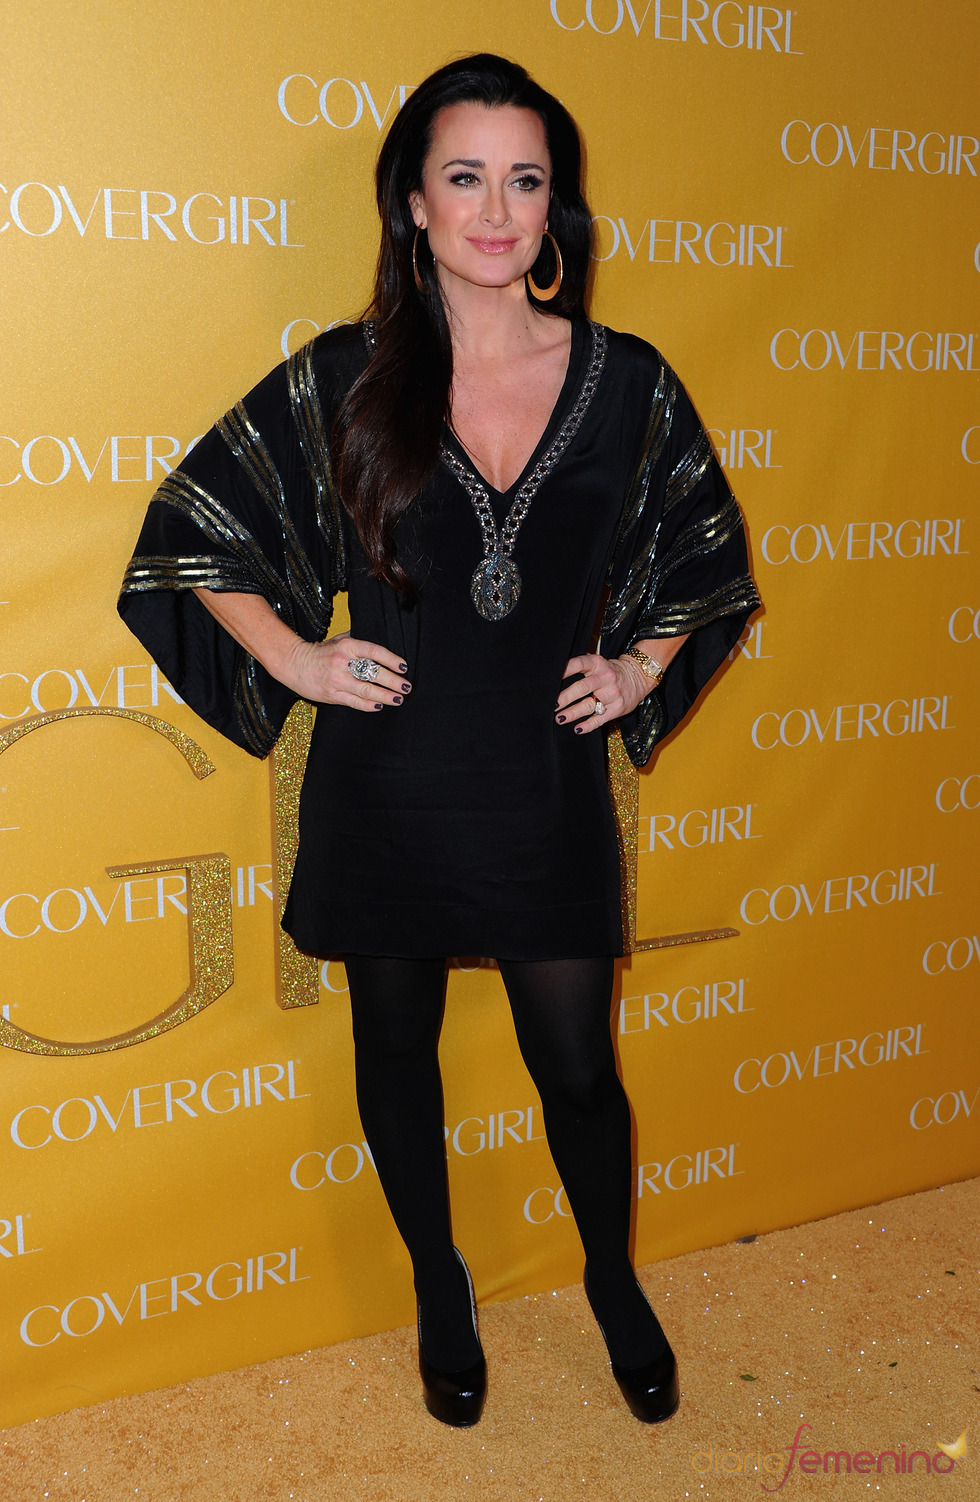 Kyle Richards en la Fiesta Covergirl